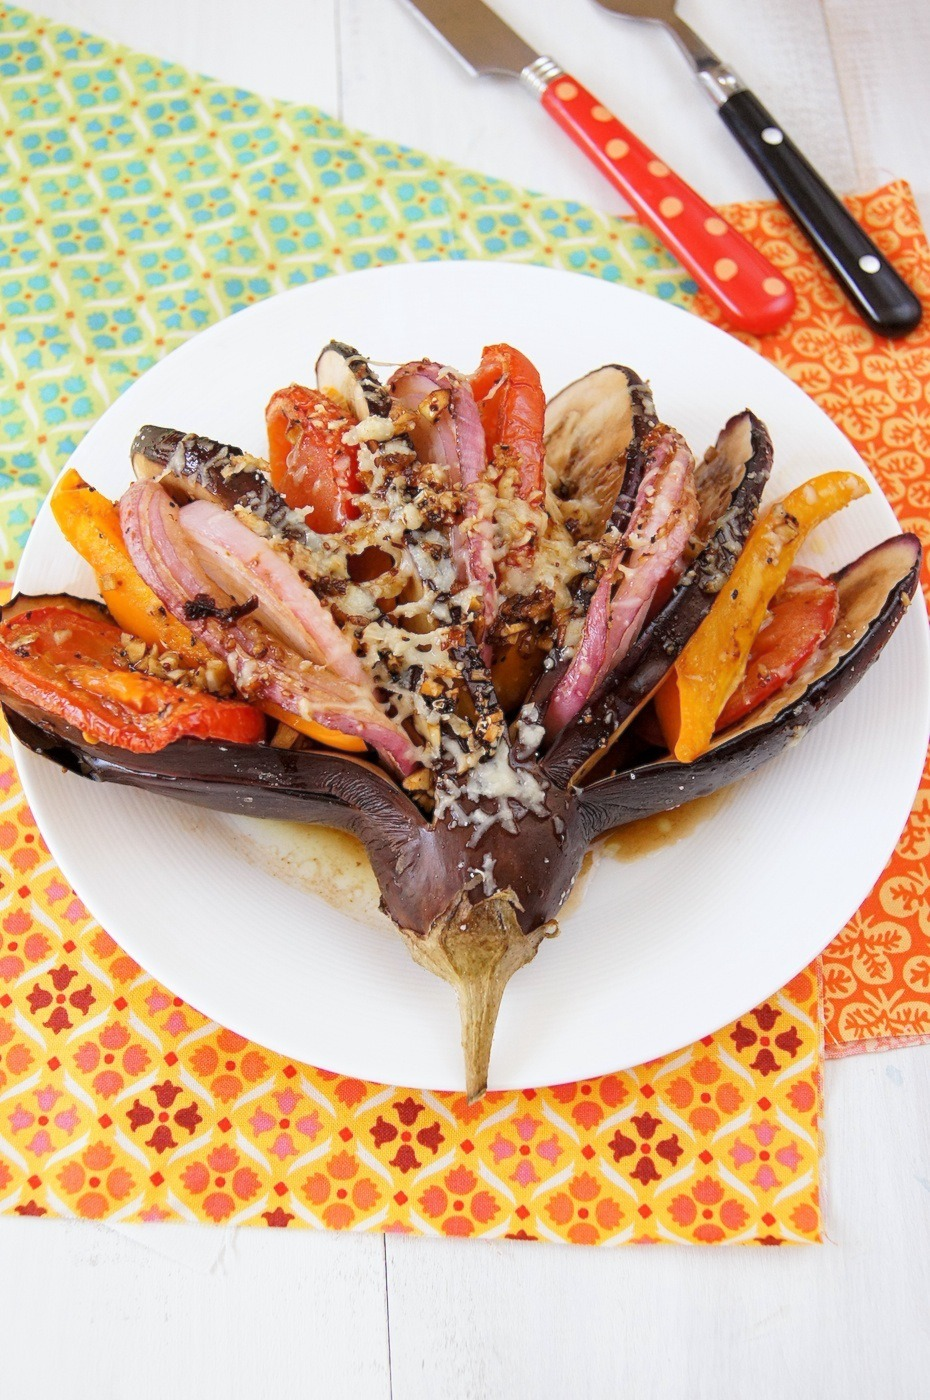 beautifulpicturesofhealthyfood:  Grilled vegetables with balsamic dressing and parmesan - Very bright and healthy dish, with vivid colors of different vegetables and delicate aroma of balsamic dressing. Even if you are new to cooking, you cam make it easily…RECIPE